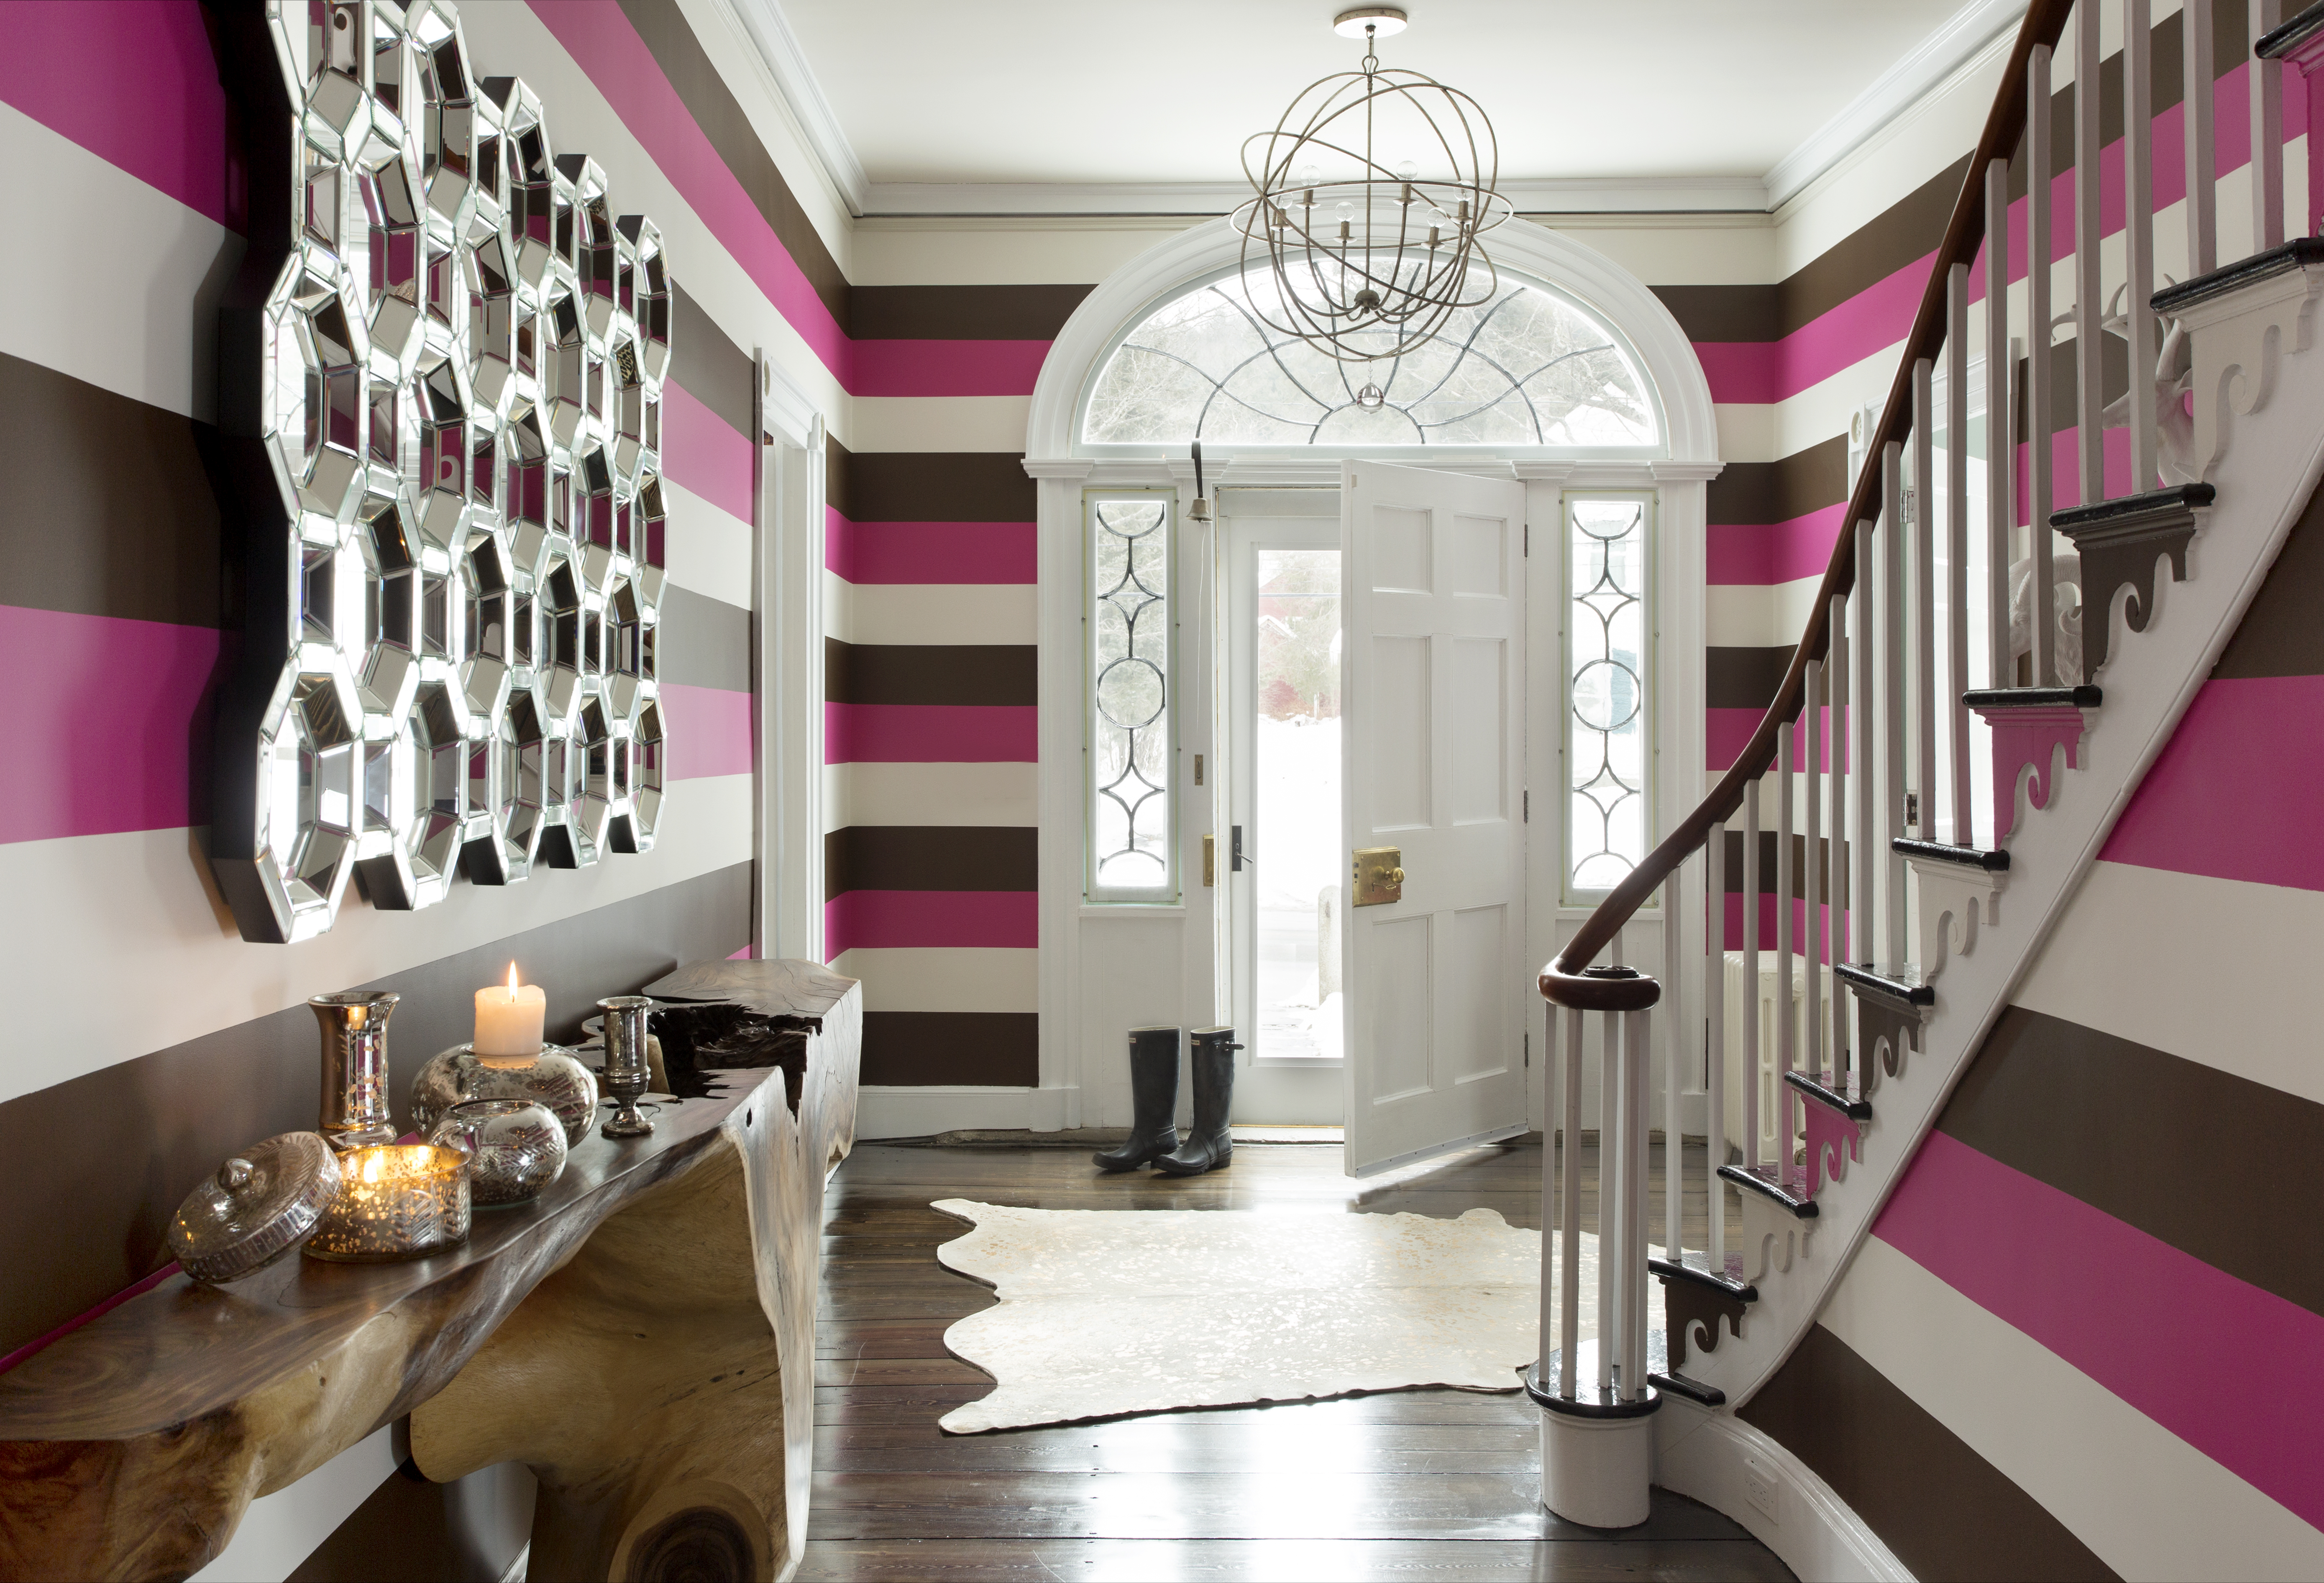 Neon Pink Interior Paint Part - 39: An Entry With Bright Pink, Dark Brown, And White Painted Horizontal Stripes.